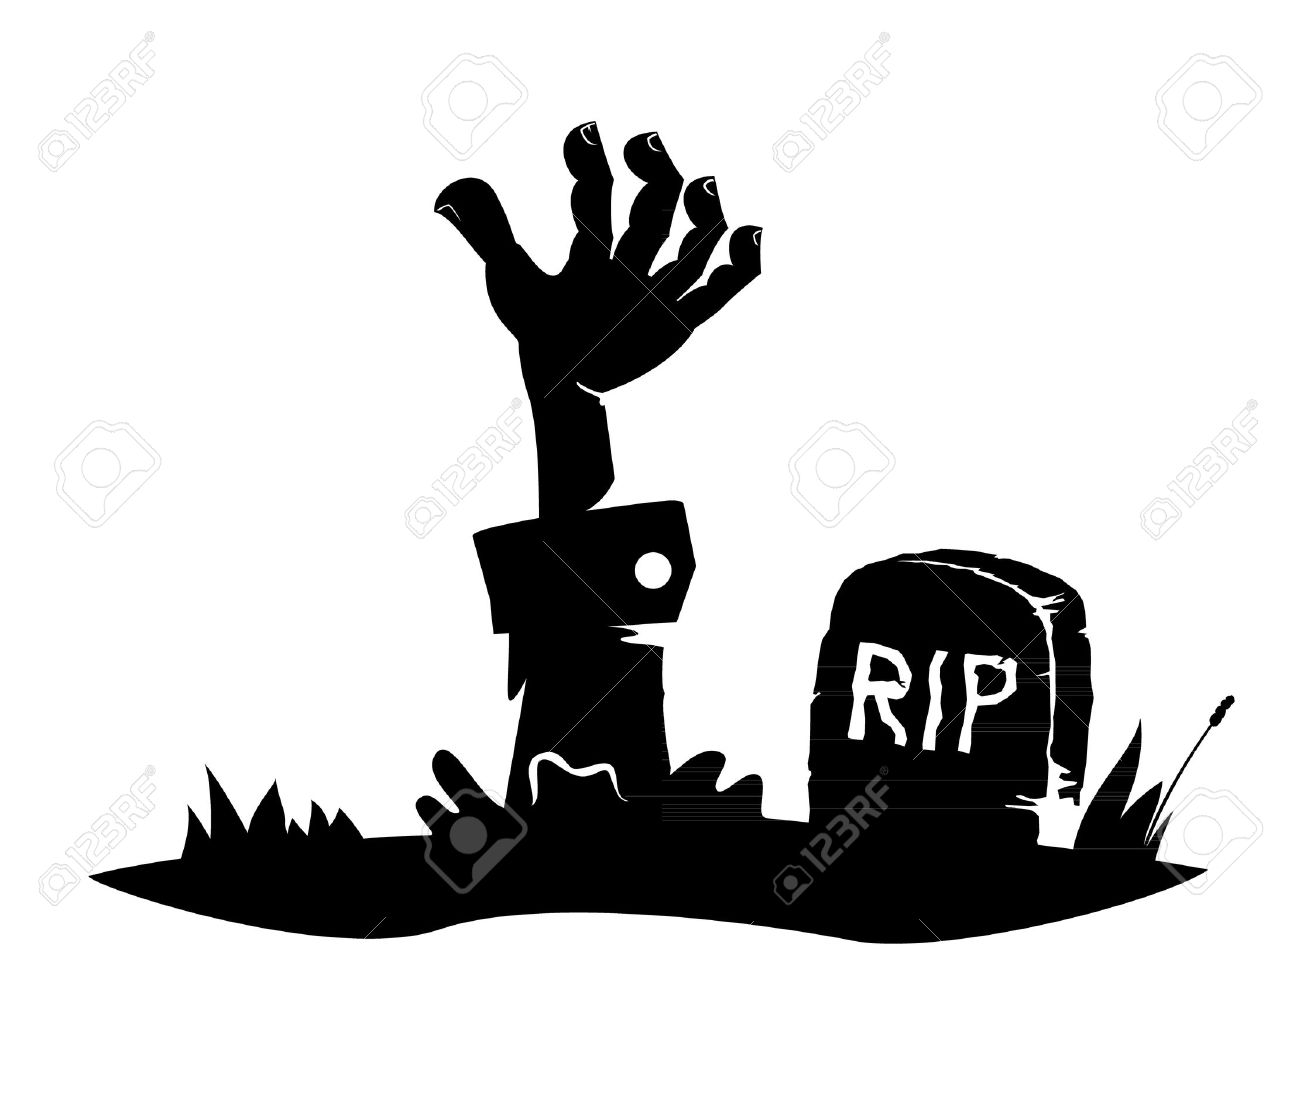 Hand reaching from the grave, simple drawing, icon Stock Vector - 20654236